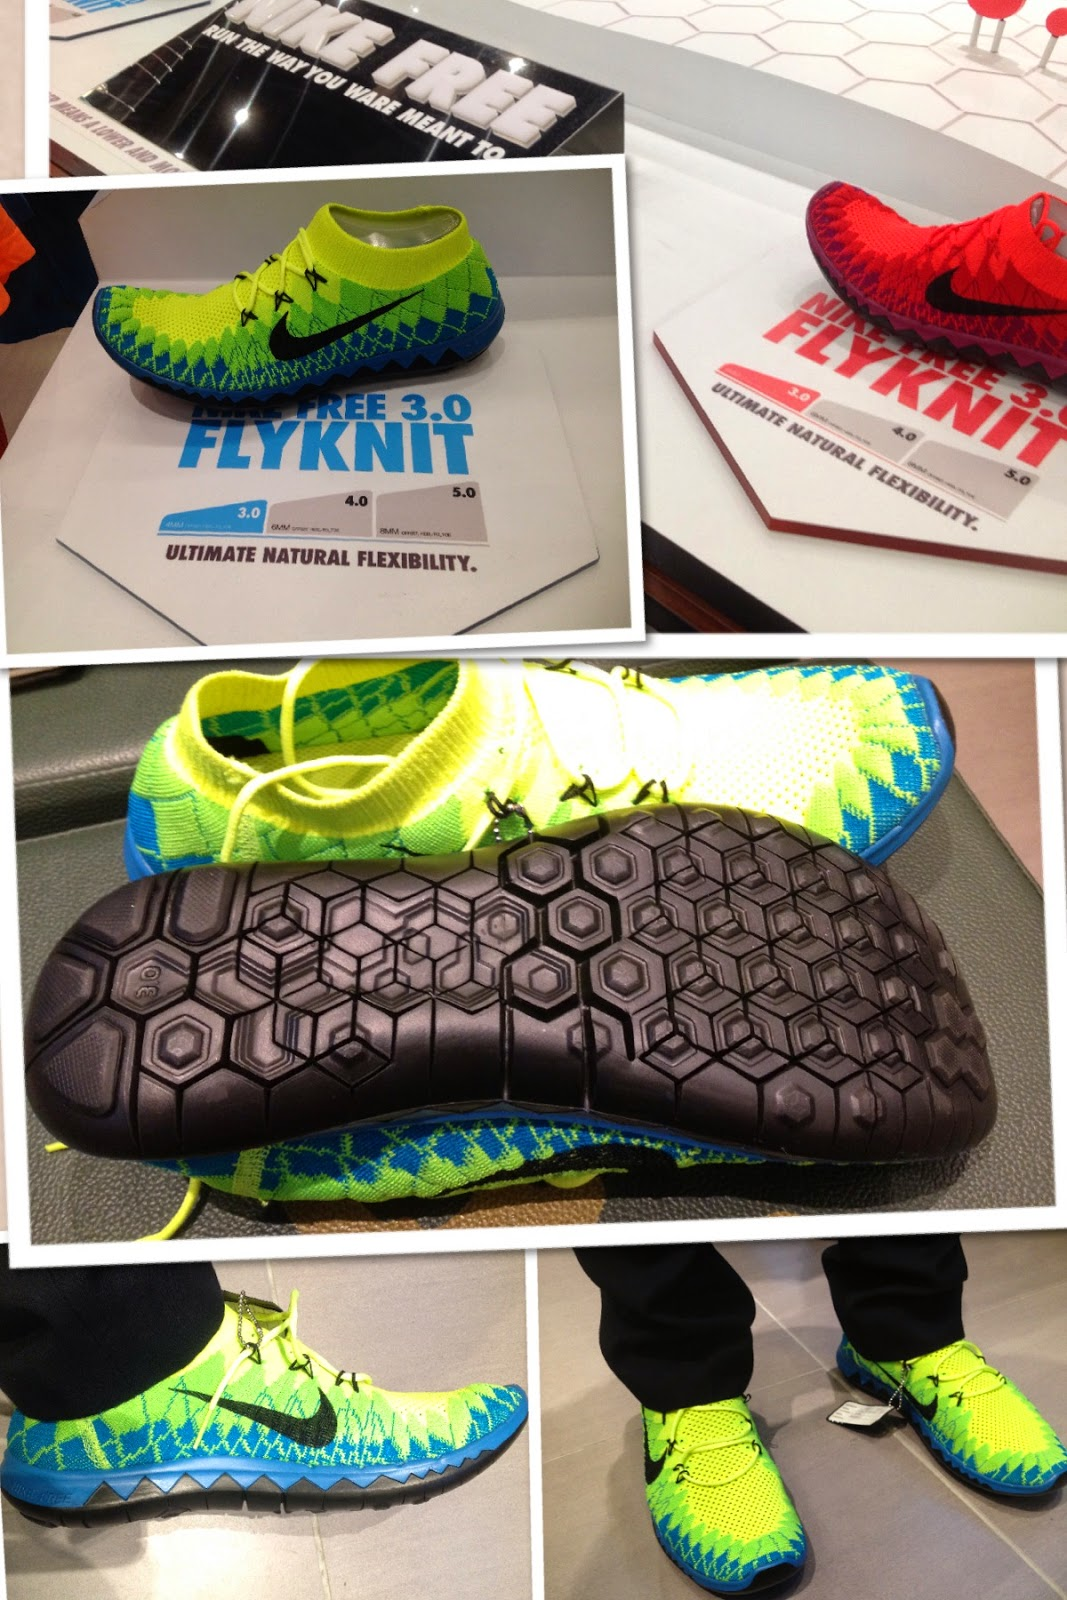 Nike Free Run Flyknit Review - Be the Ninja Roadrunner in